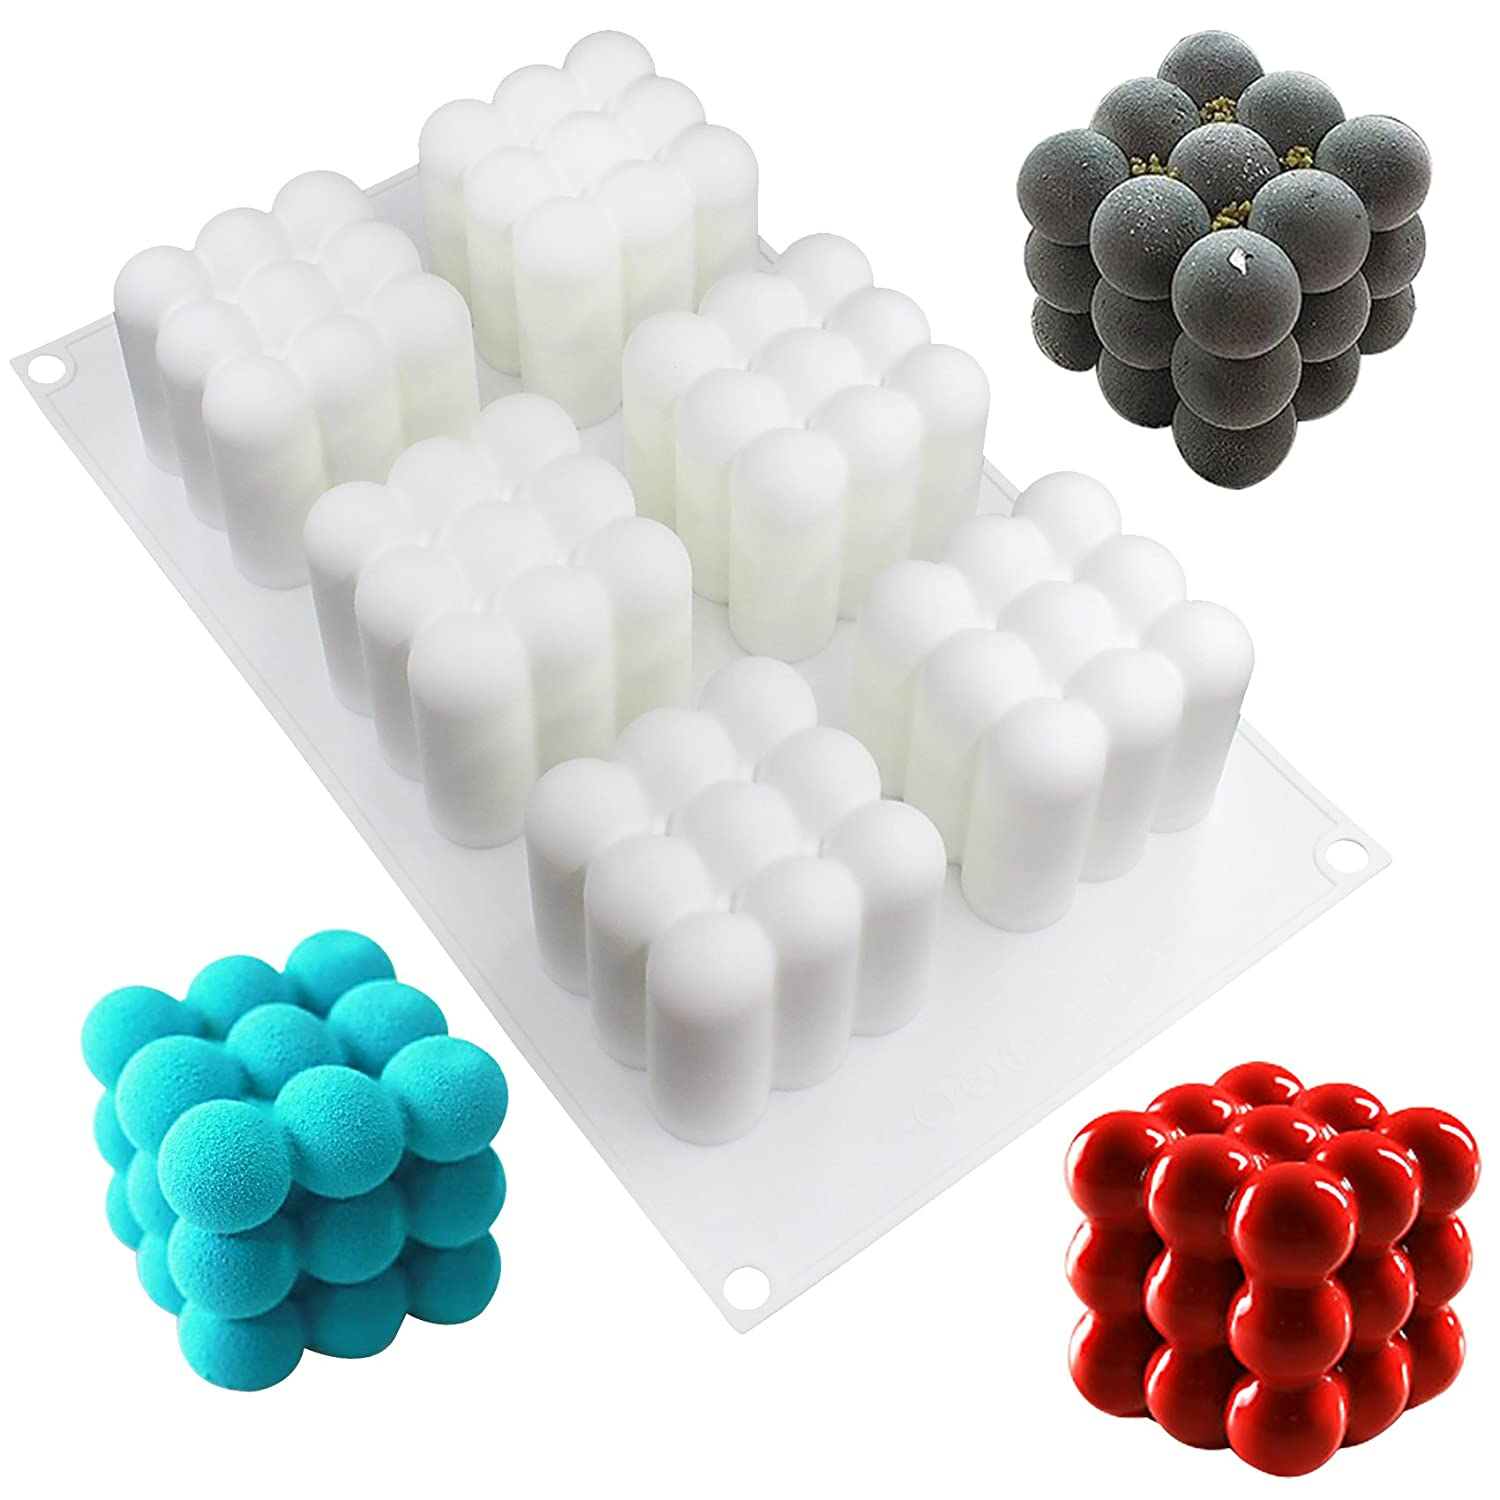 musykrafties 6 Cavities Magic Cubes Mousse Cake Silicone Mould Tray per Cavity 2.4x2.4x2.4inch